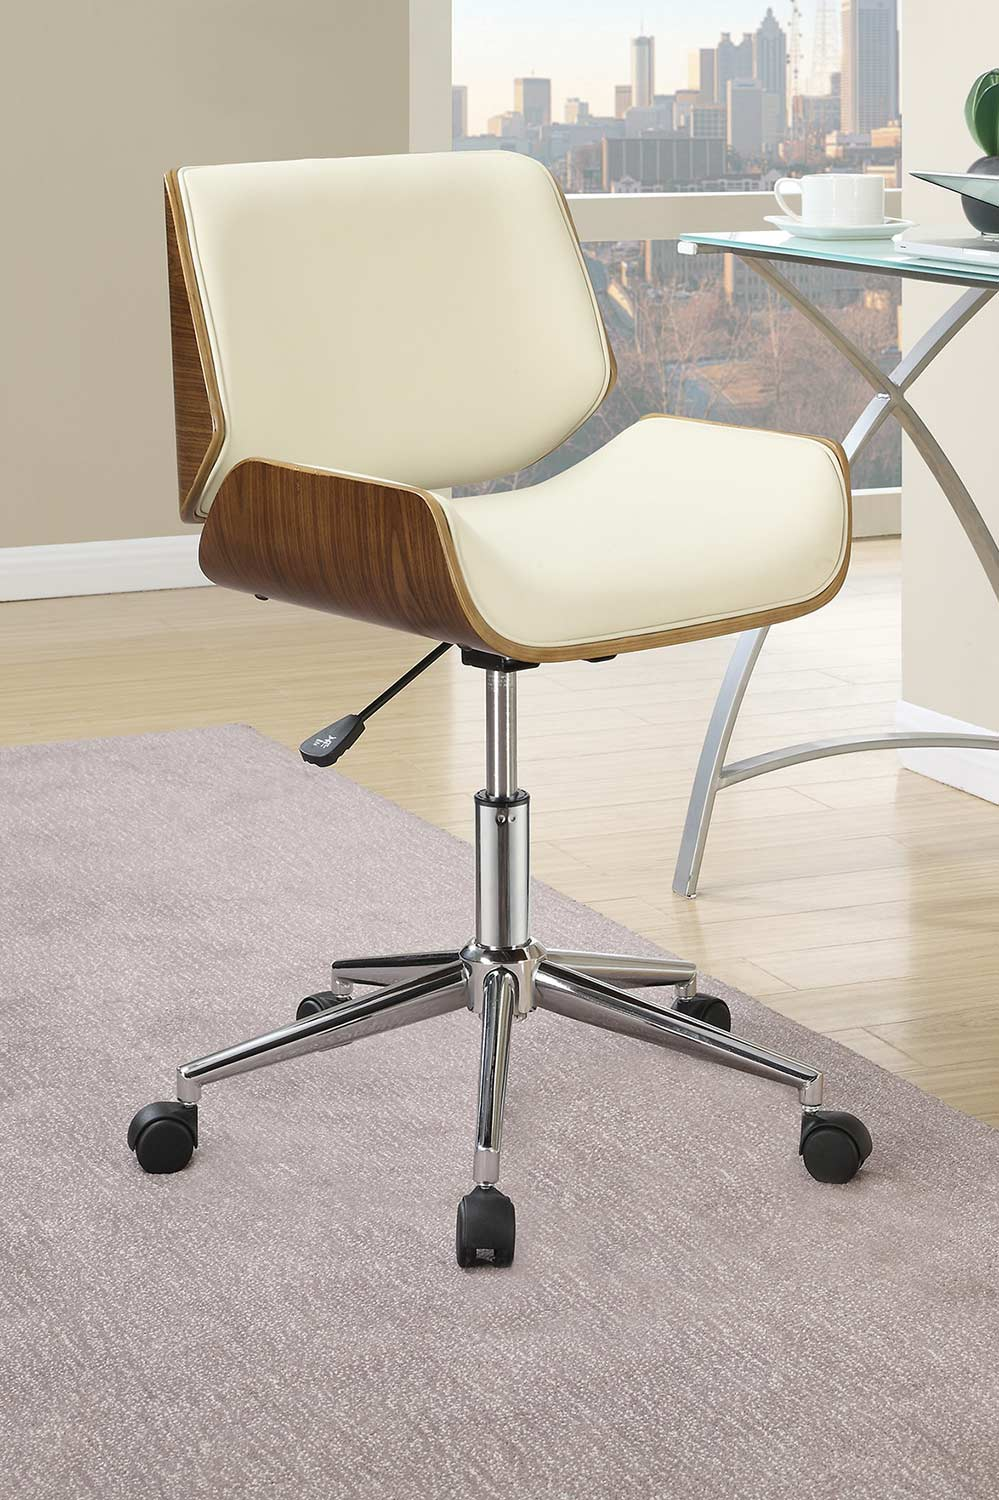 Coaster 800613 Office Chair - Ecru Leatherette